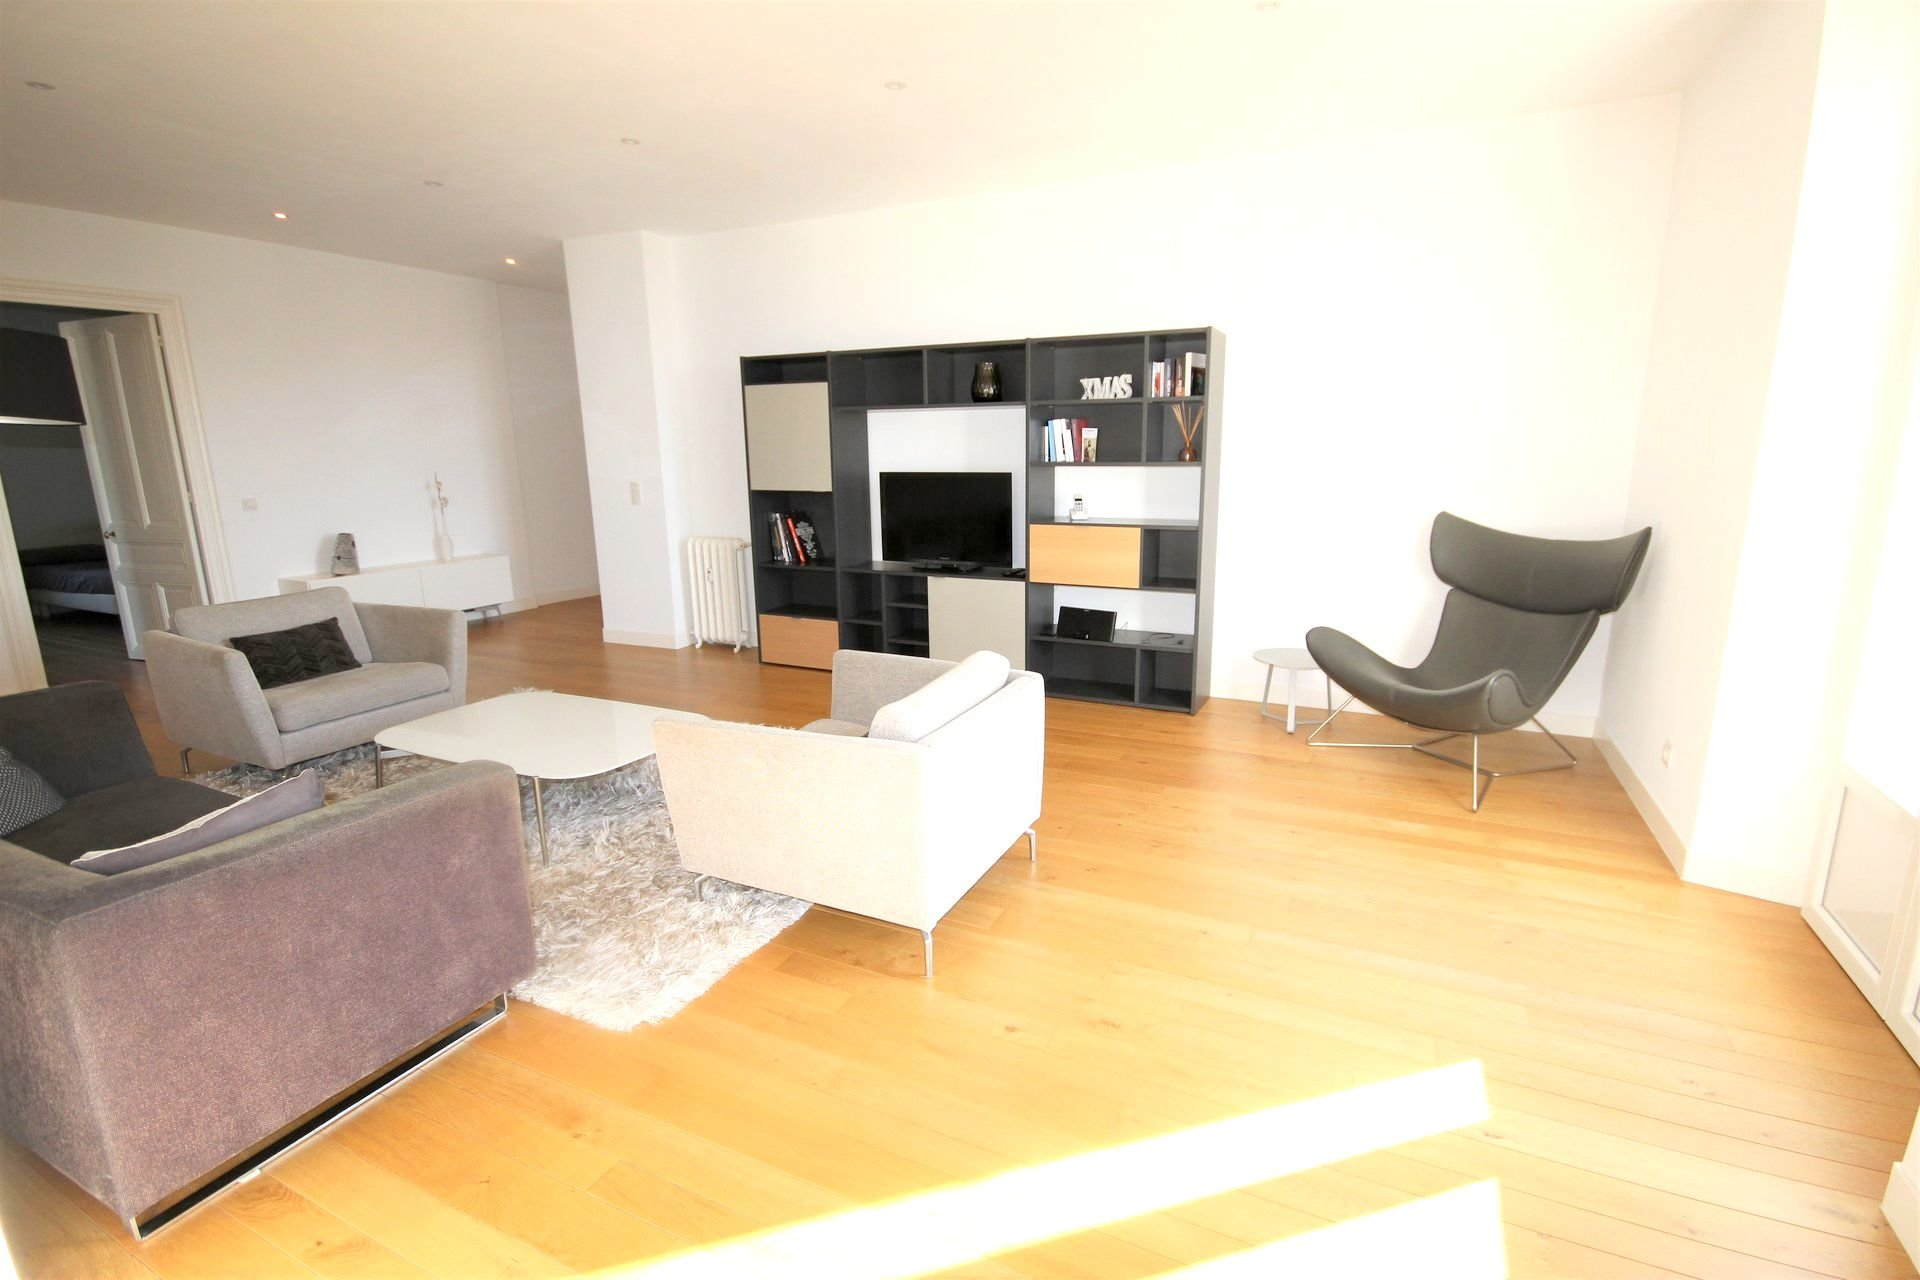 CANNES SALE 5 ROOMS RESIDENCE BOURGEOISE QUIET CLOSE CENTER